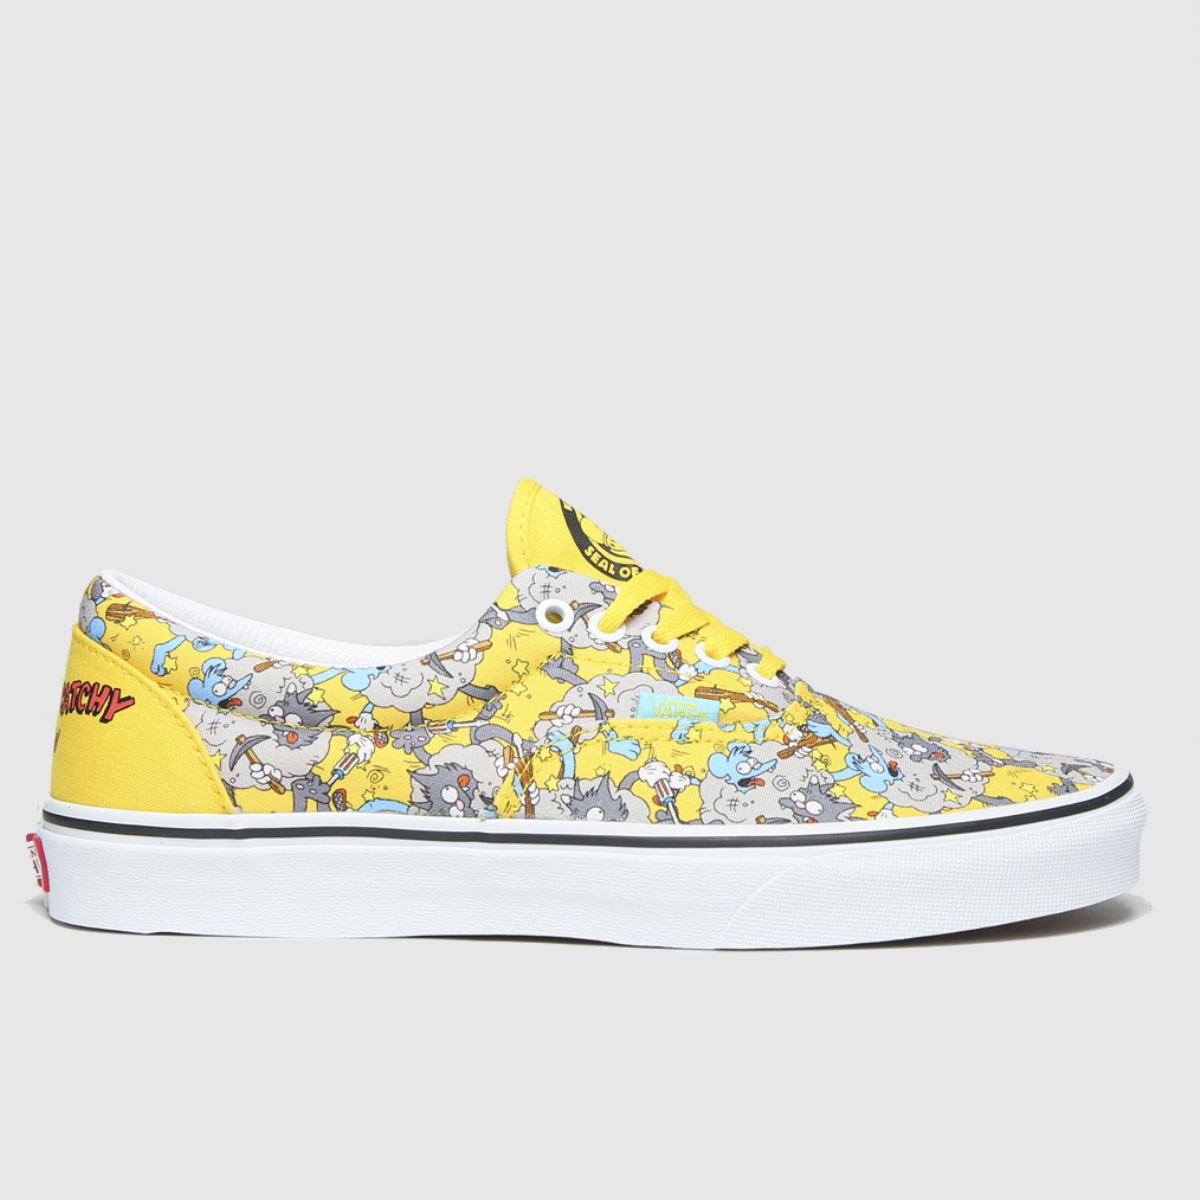 Vans Blue & Yellow Era The Simpsons Trainers